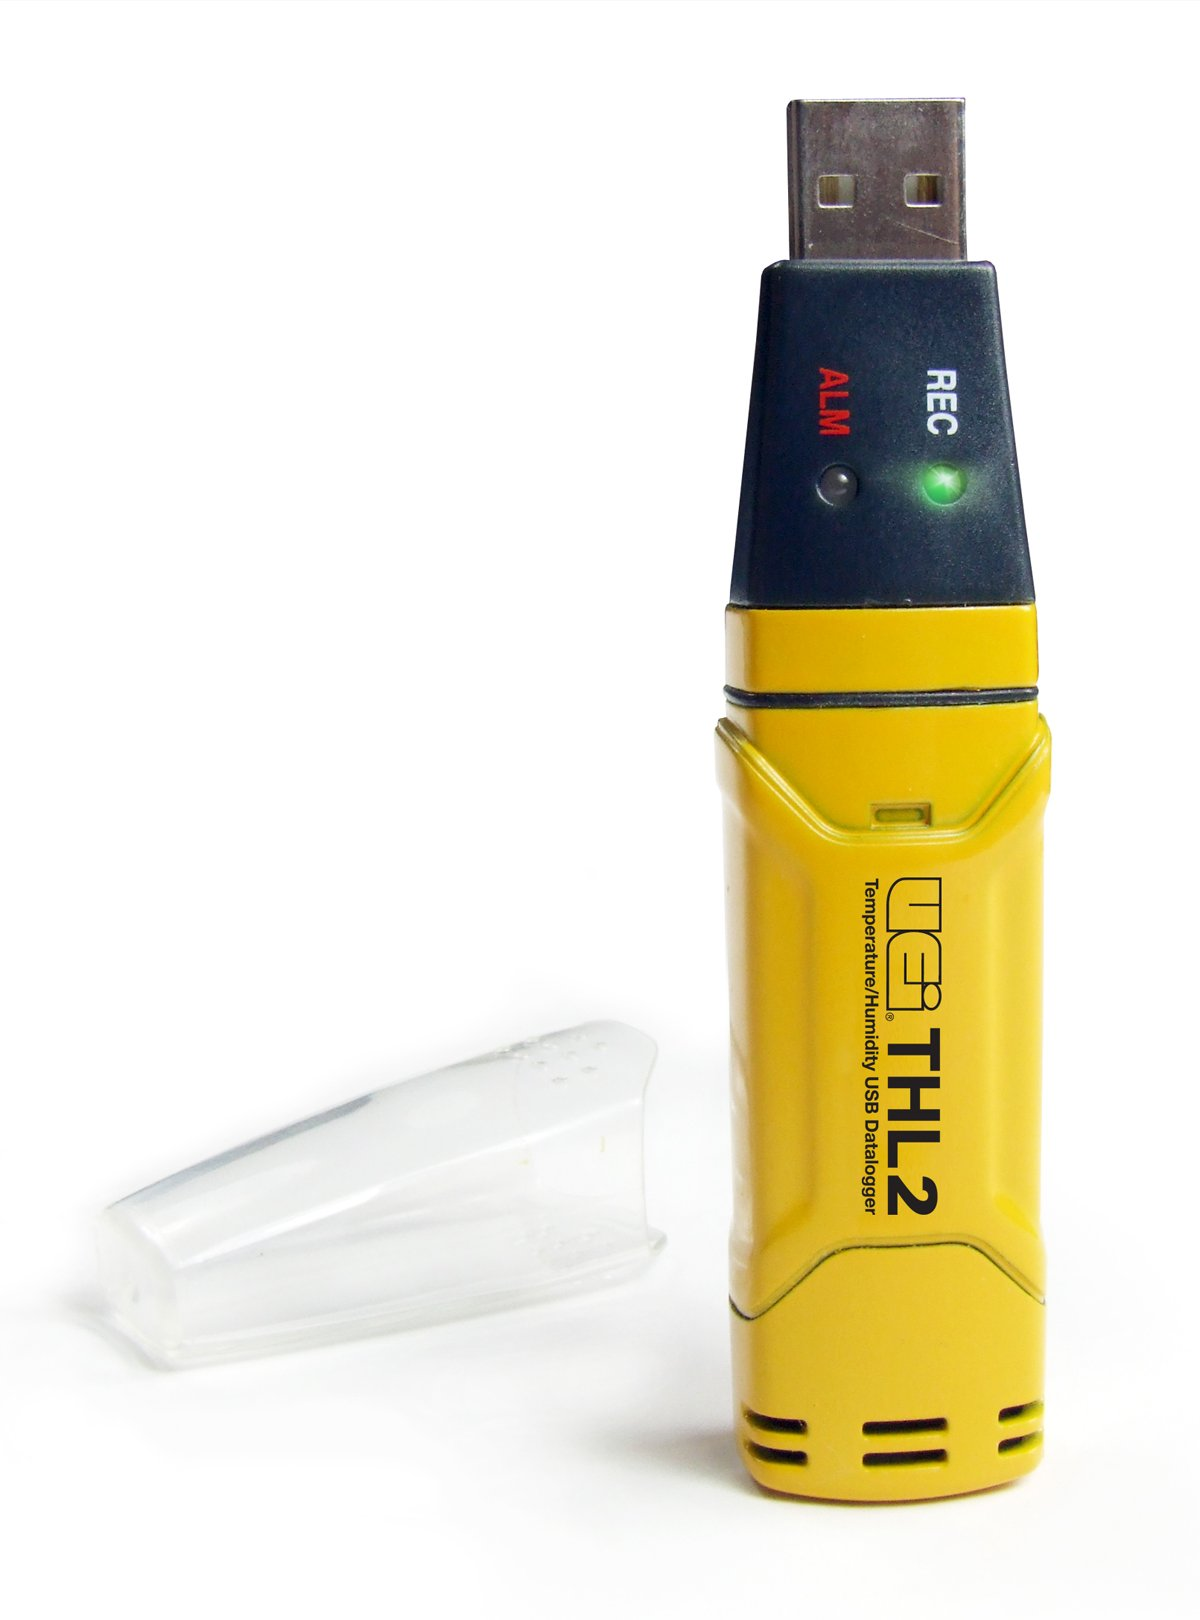 UEi Test Instruments THL2 USB Temperature Humidity Logger